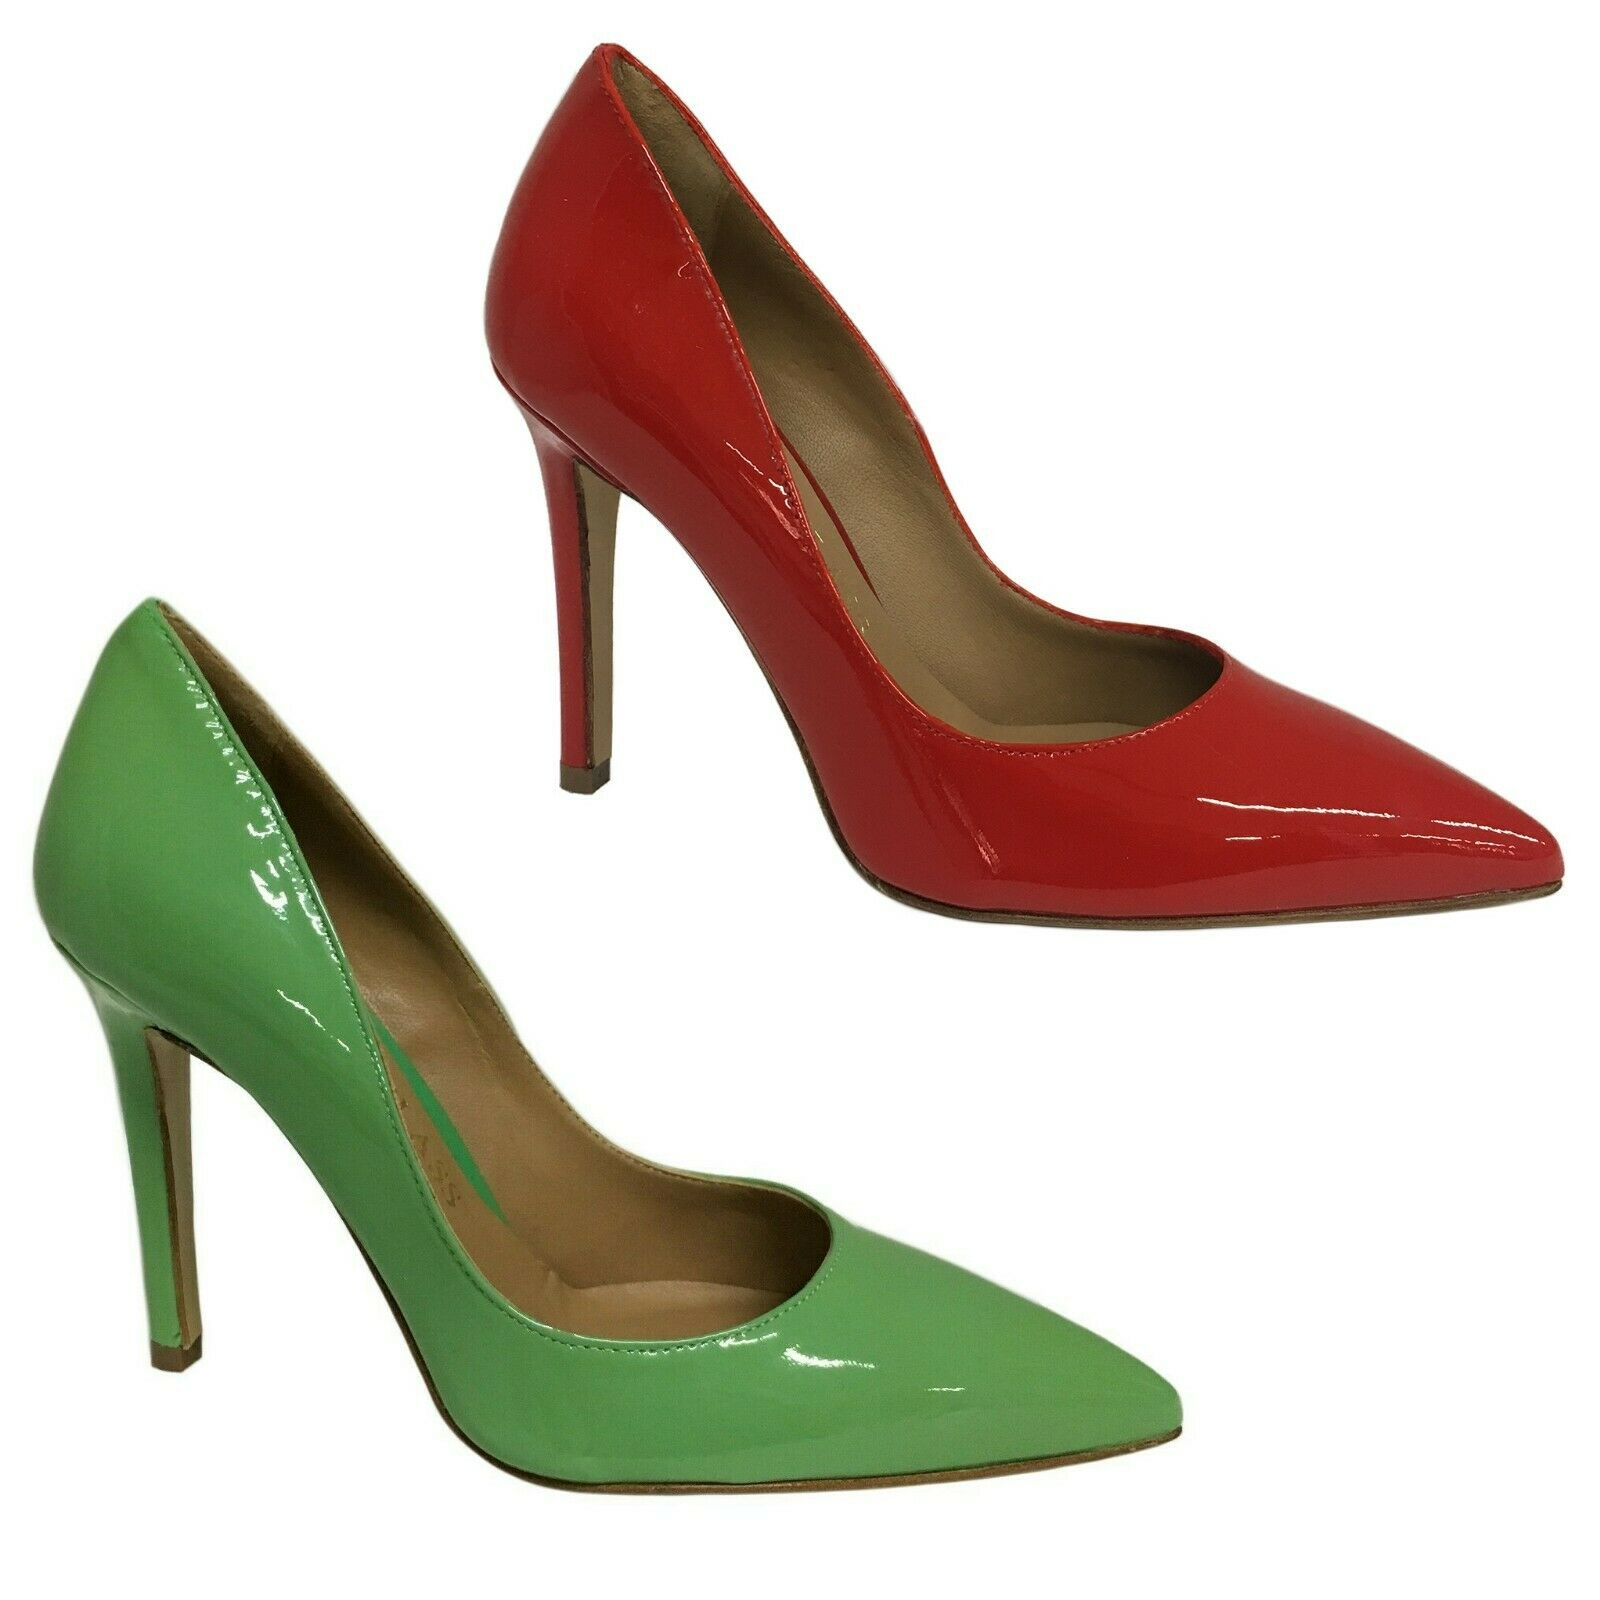 Upper class court shoes woman Paint Art r-507 100% Leather Made in